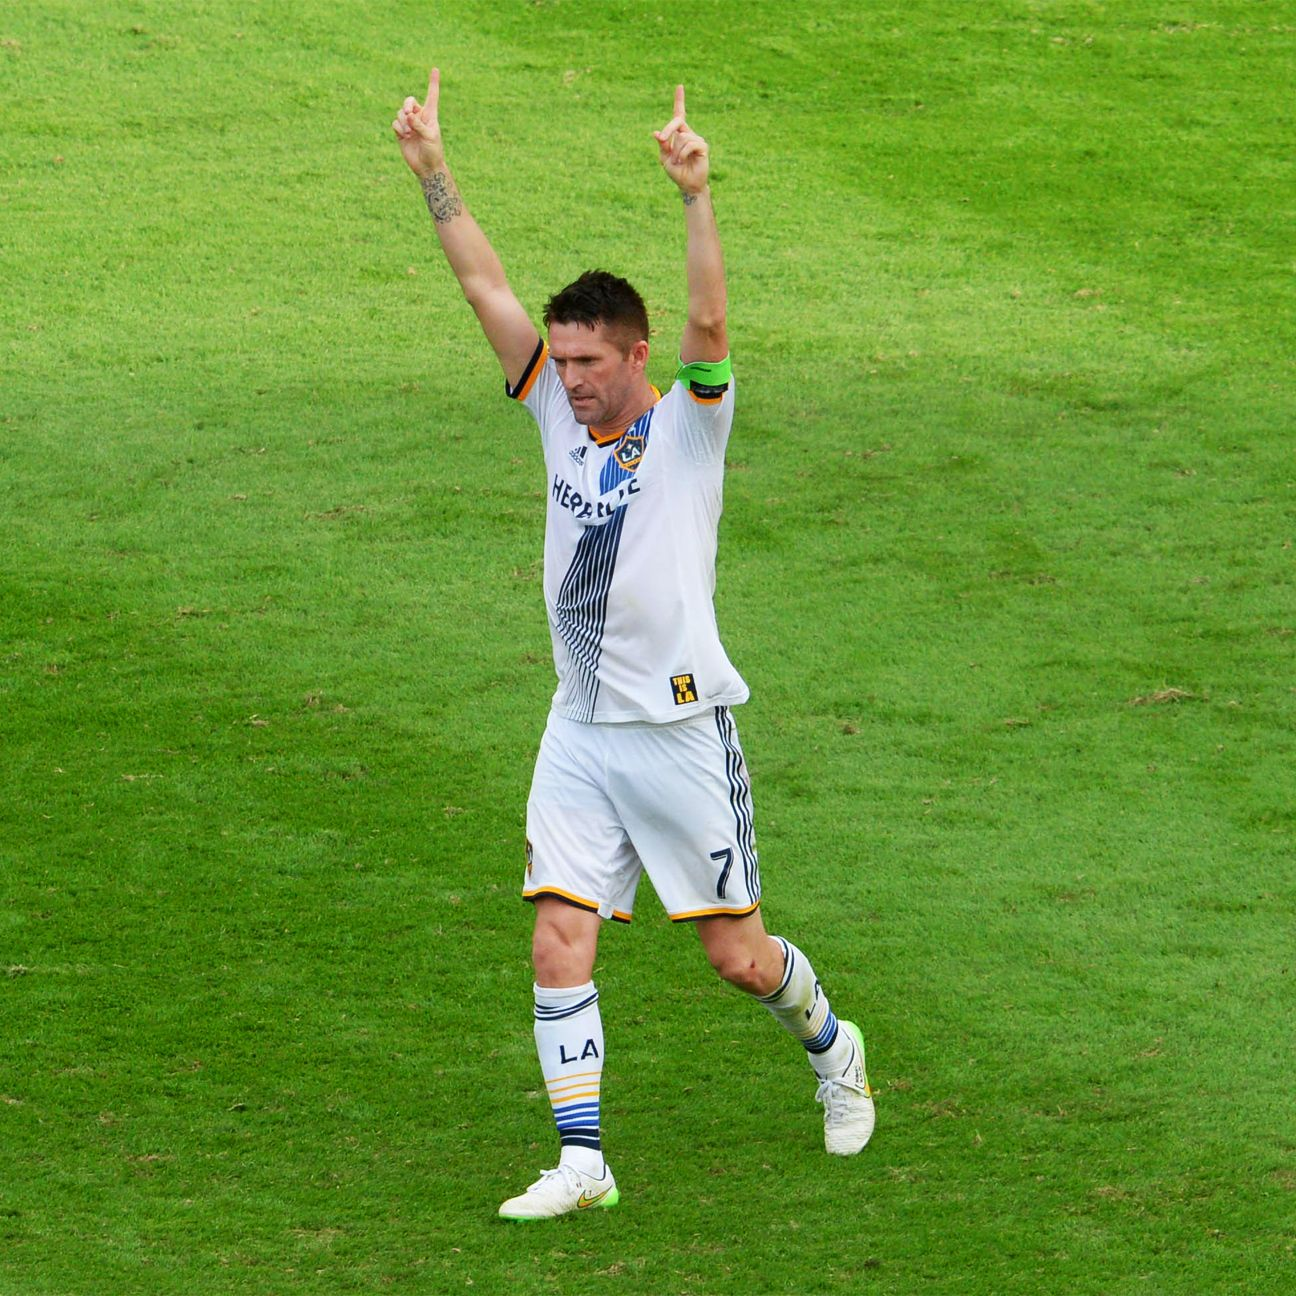 League MVP Robbie Keane came through when it mattered most with an extra time goal to give the Galaxy their fifth title.